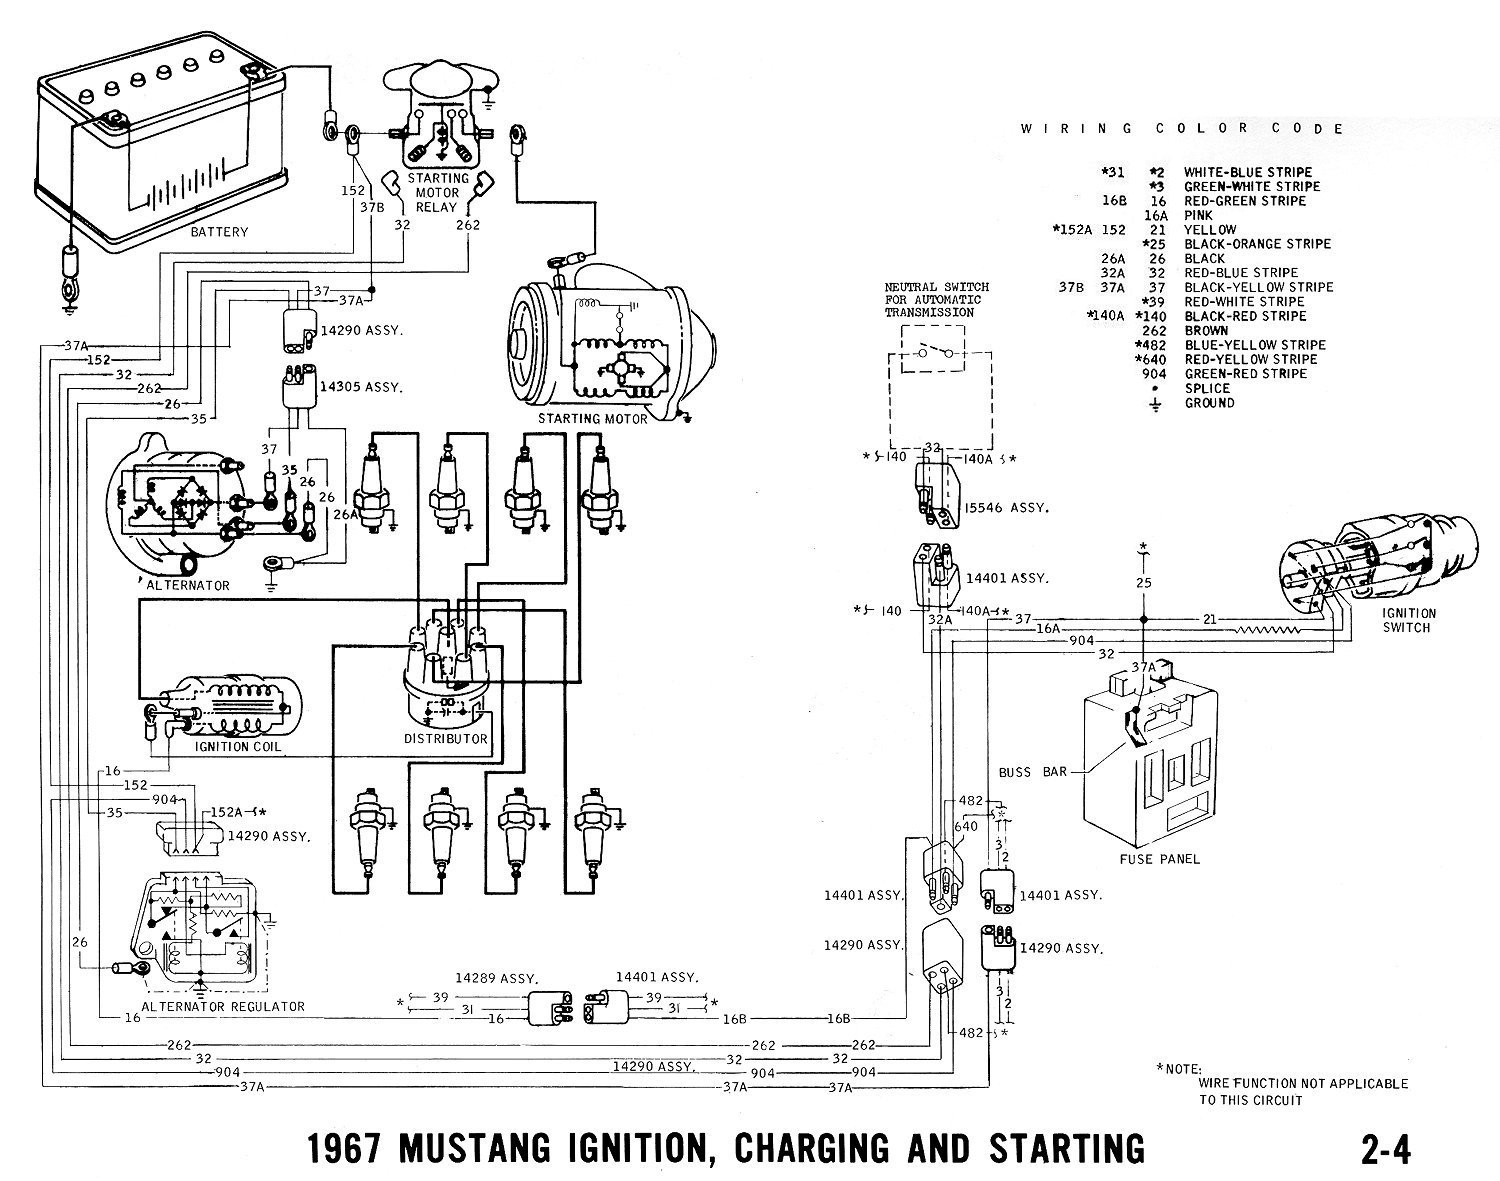 1967 ford mustang alternator 7078 connection problem tach wiring diagram 1968 mustang